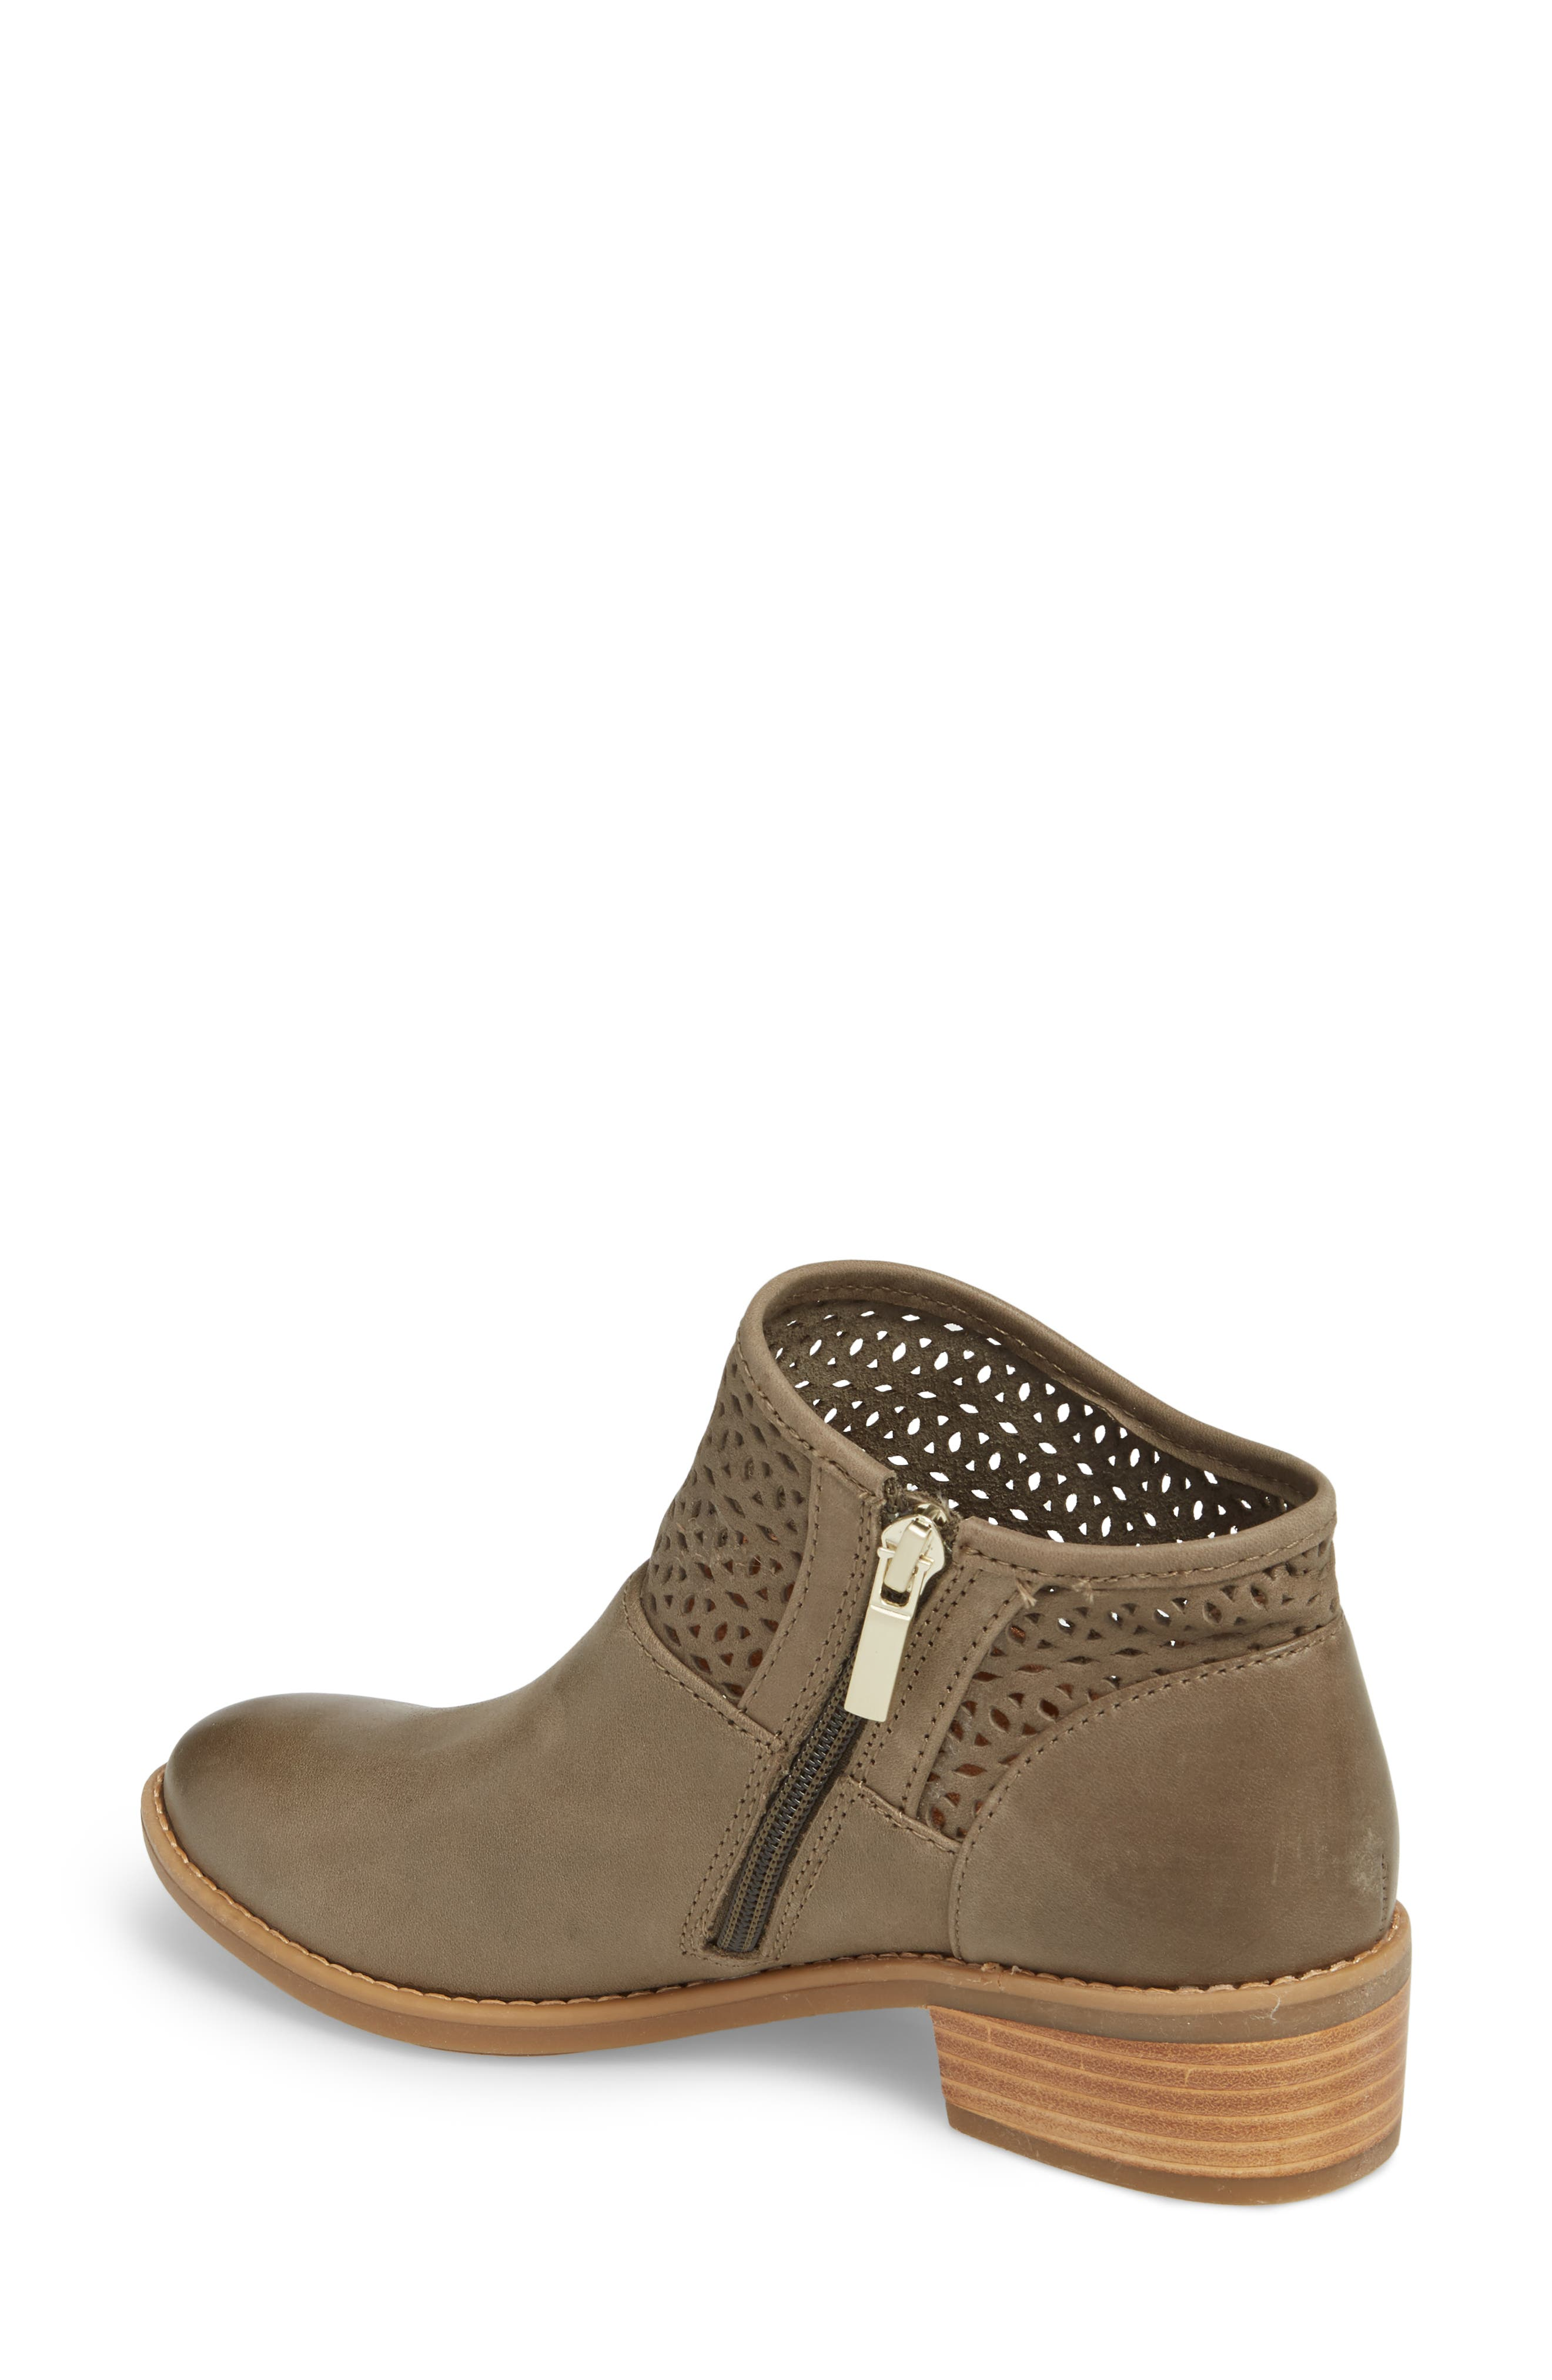 Caileen Bootie,                             Alternate thumbnail 2, color,                             Pale Olive